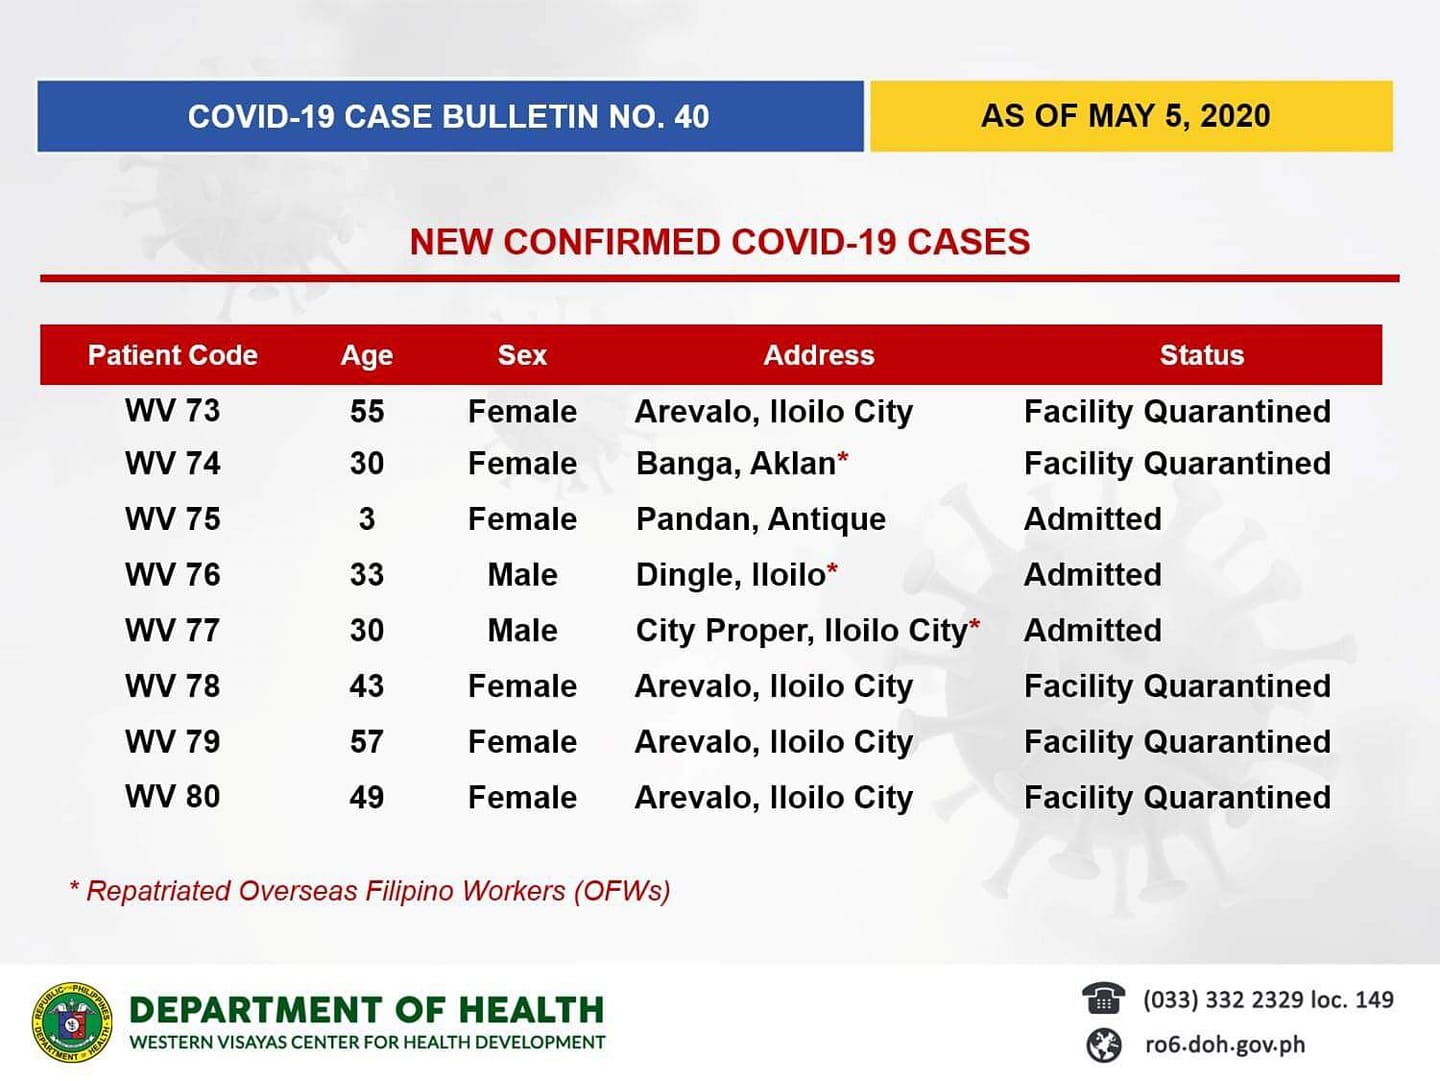 DOH-6 Covid-19 case updates on May 5, 2020.